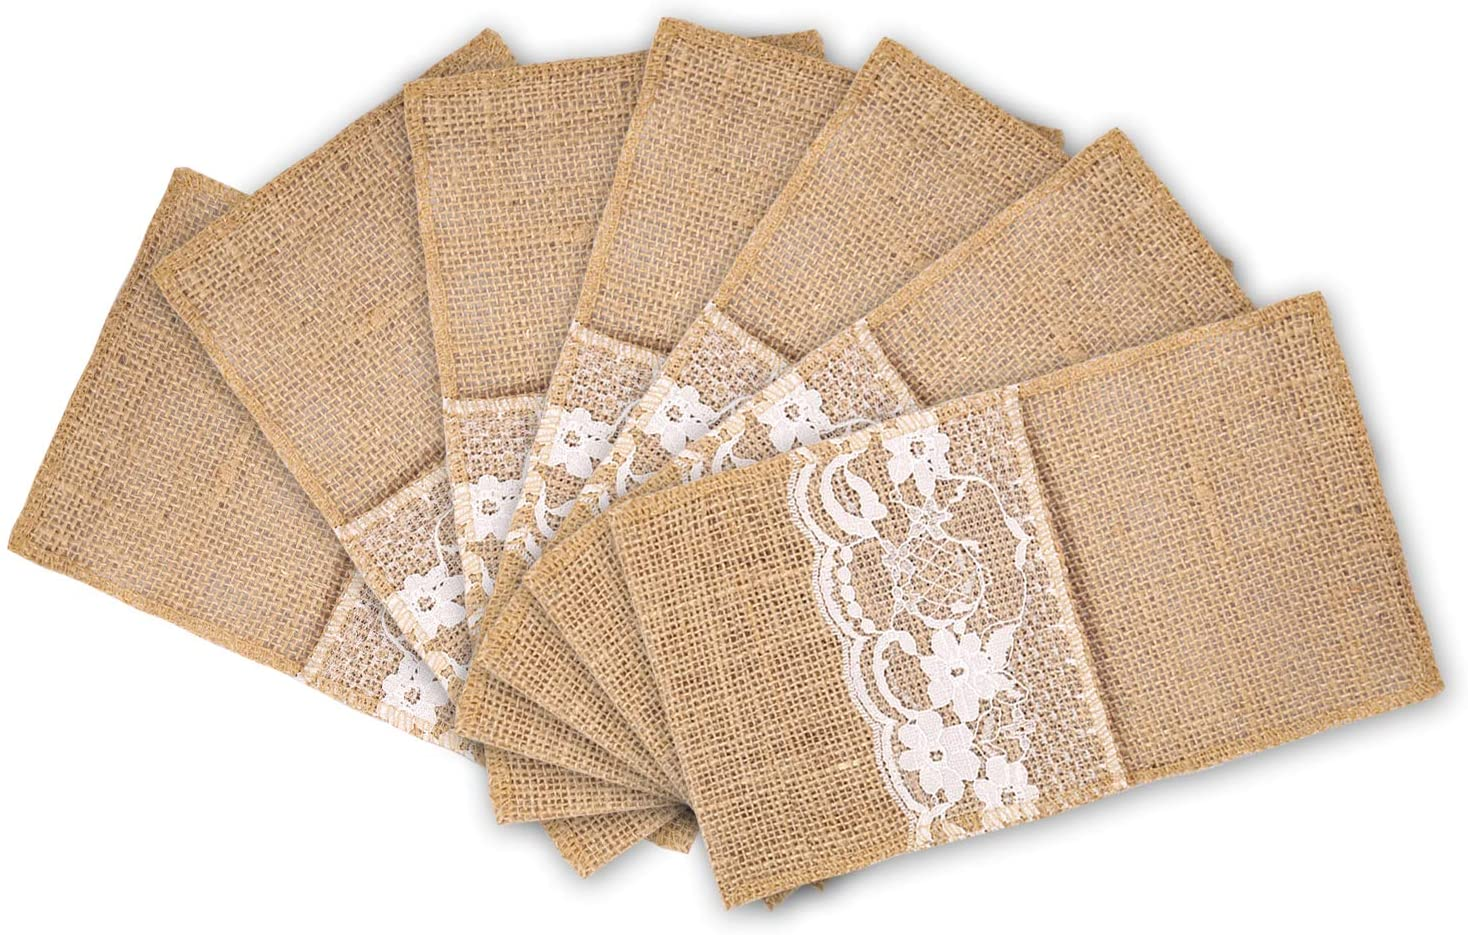 mds Pack of 75 Wedding Burlap 4 x 8 Lace InchUtensil Holders Silverware Cutlery Pouch Bag Lace Napkin Holders for Rustic Wedding and Tableware Decorations